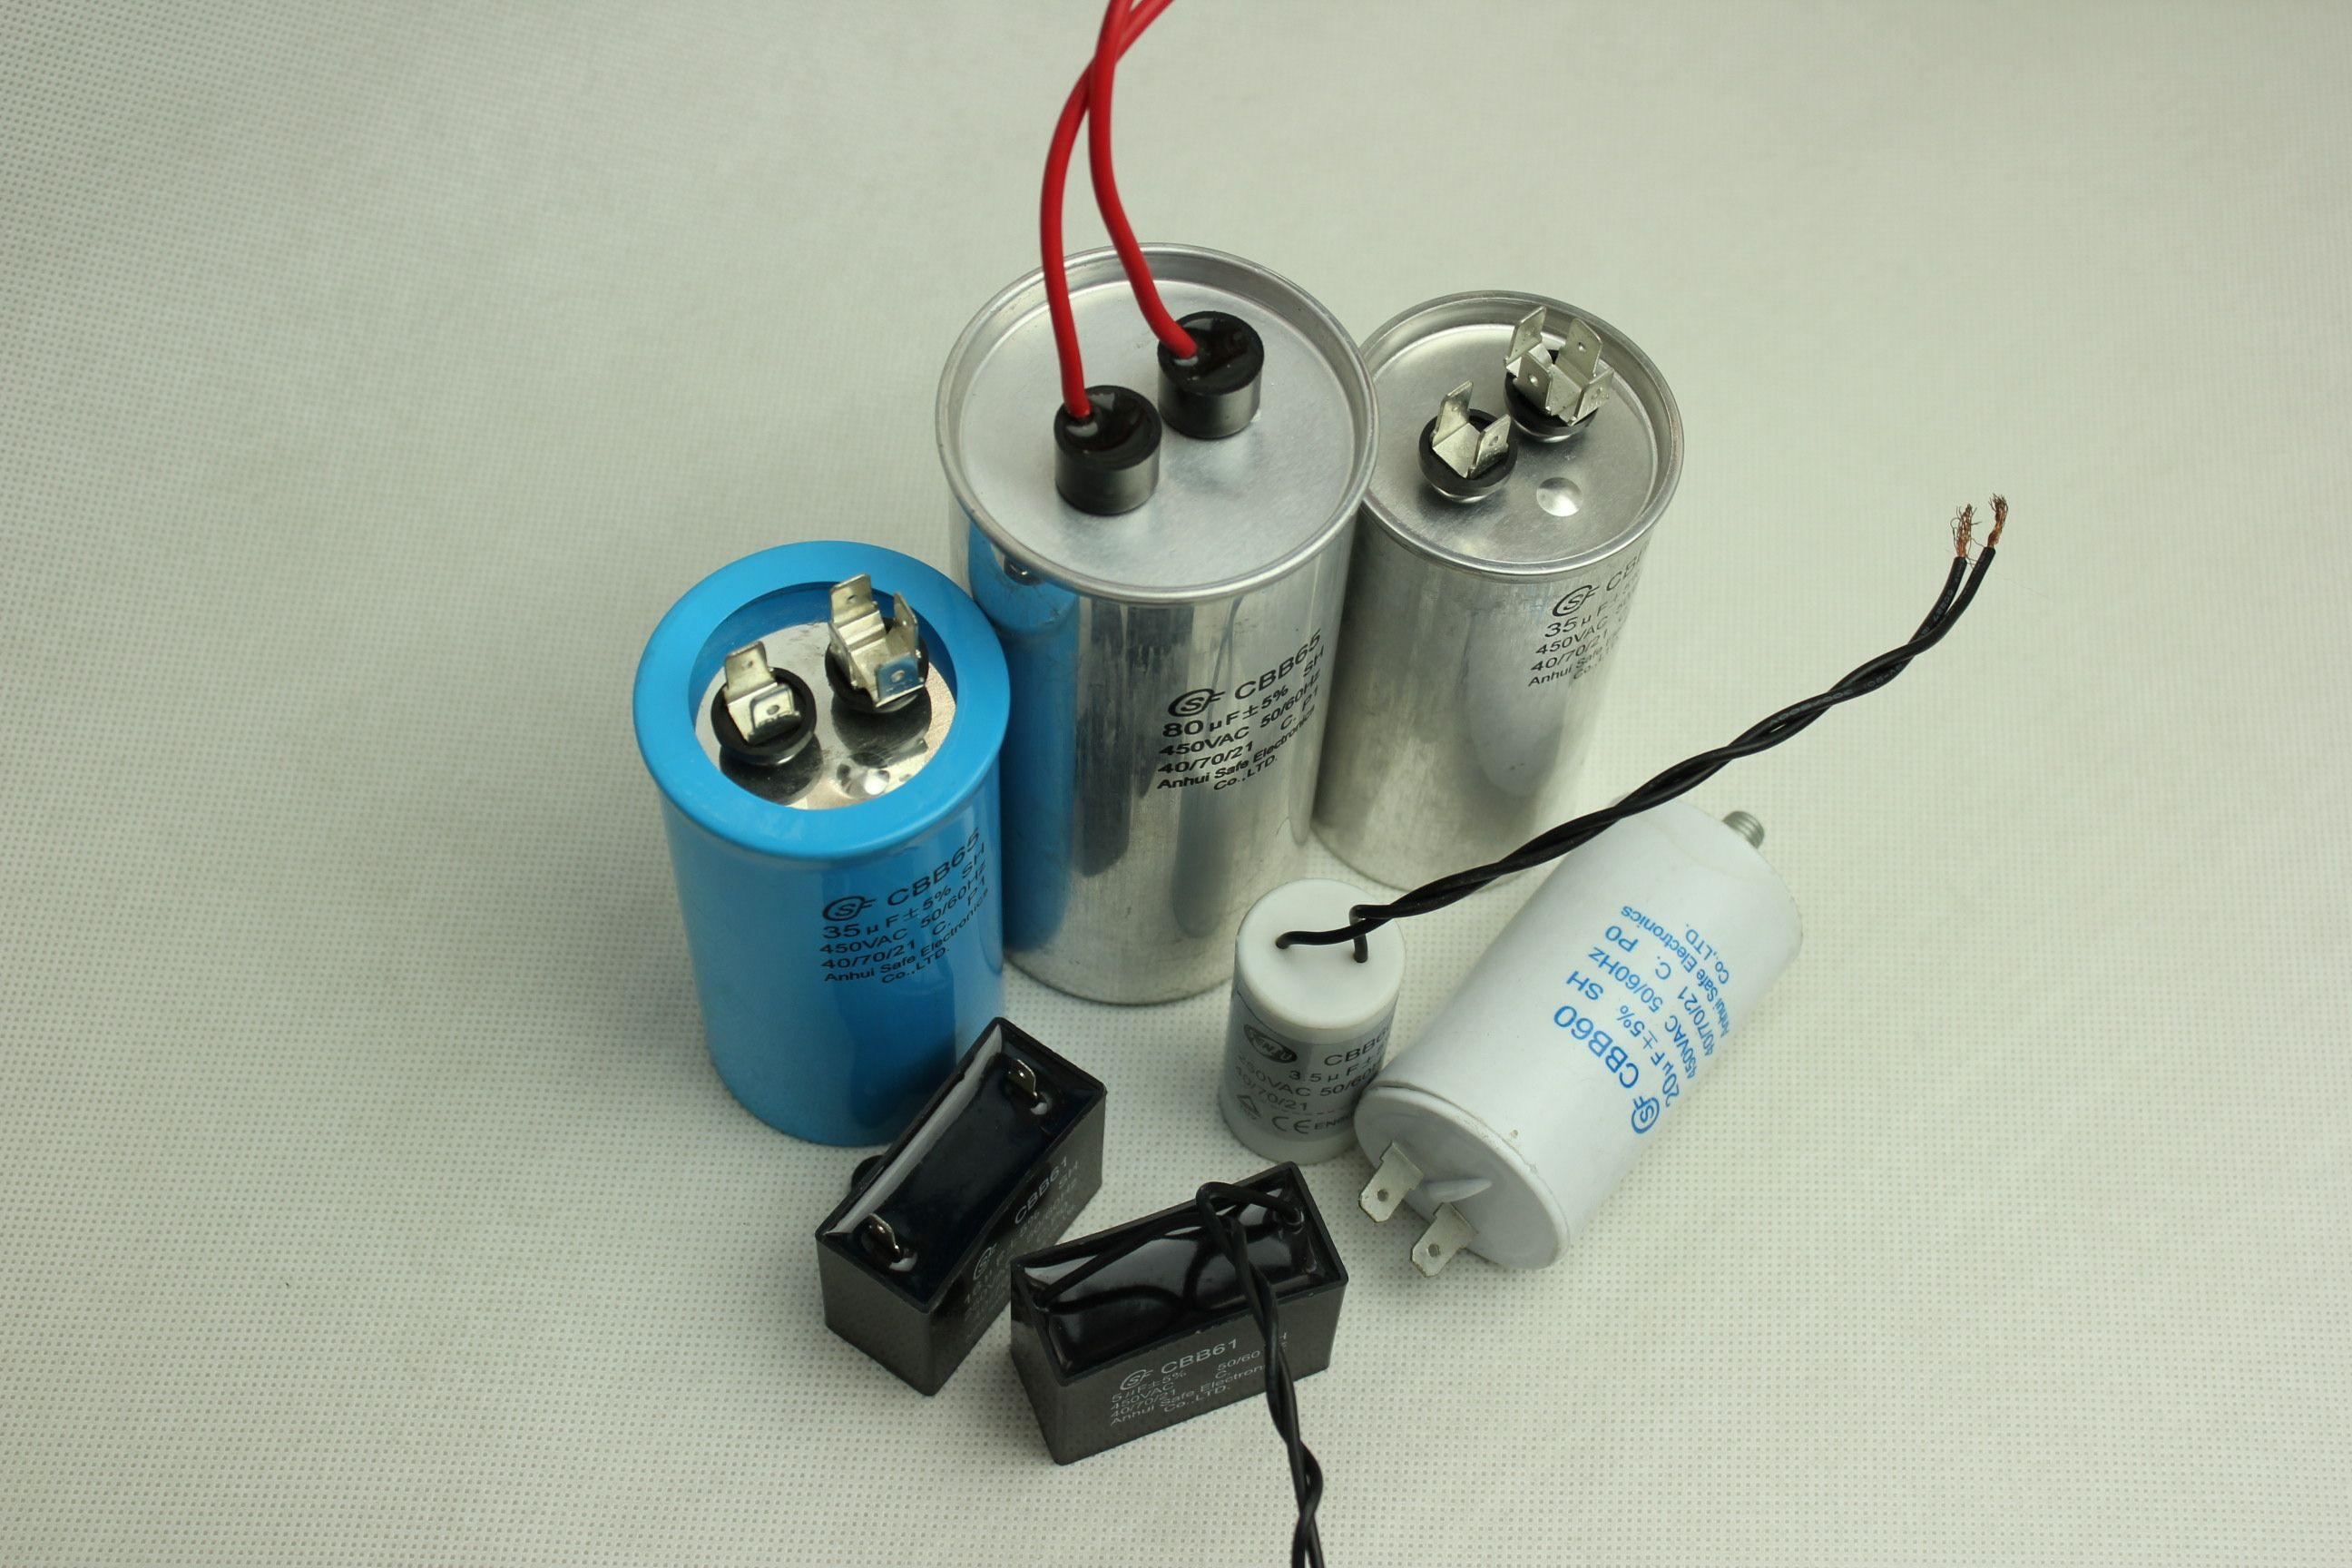 Ac Motor Capacitor Capacitor Electronic Products Earbuds